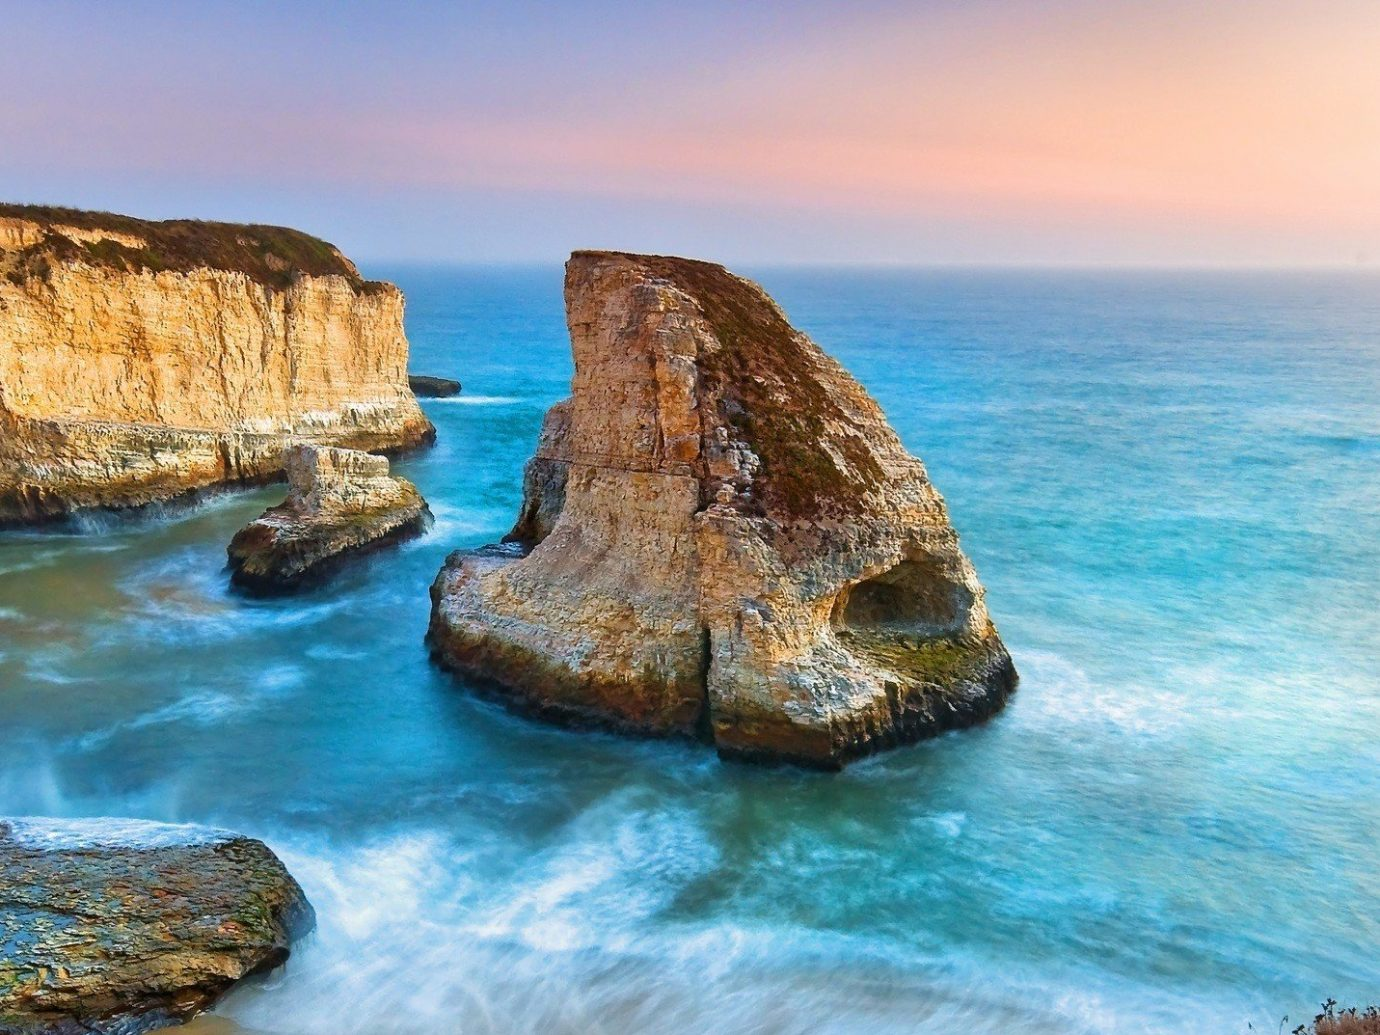 Trip Ideas water sky outdoor Coast shore rock Sea Nature Ocean landform geographical feature body of water cliff horizon Beach islet stack wave wind wave terrain cape bay cove material formation